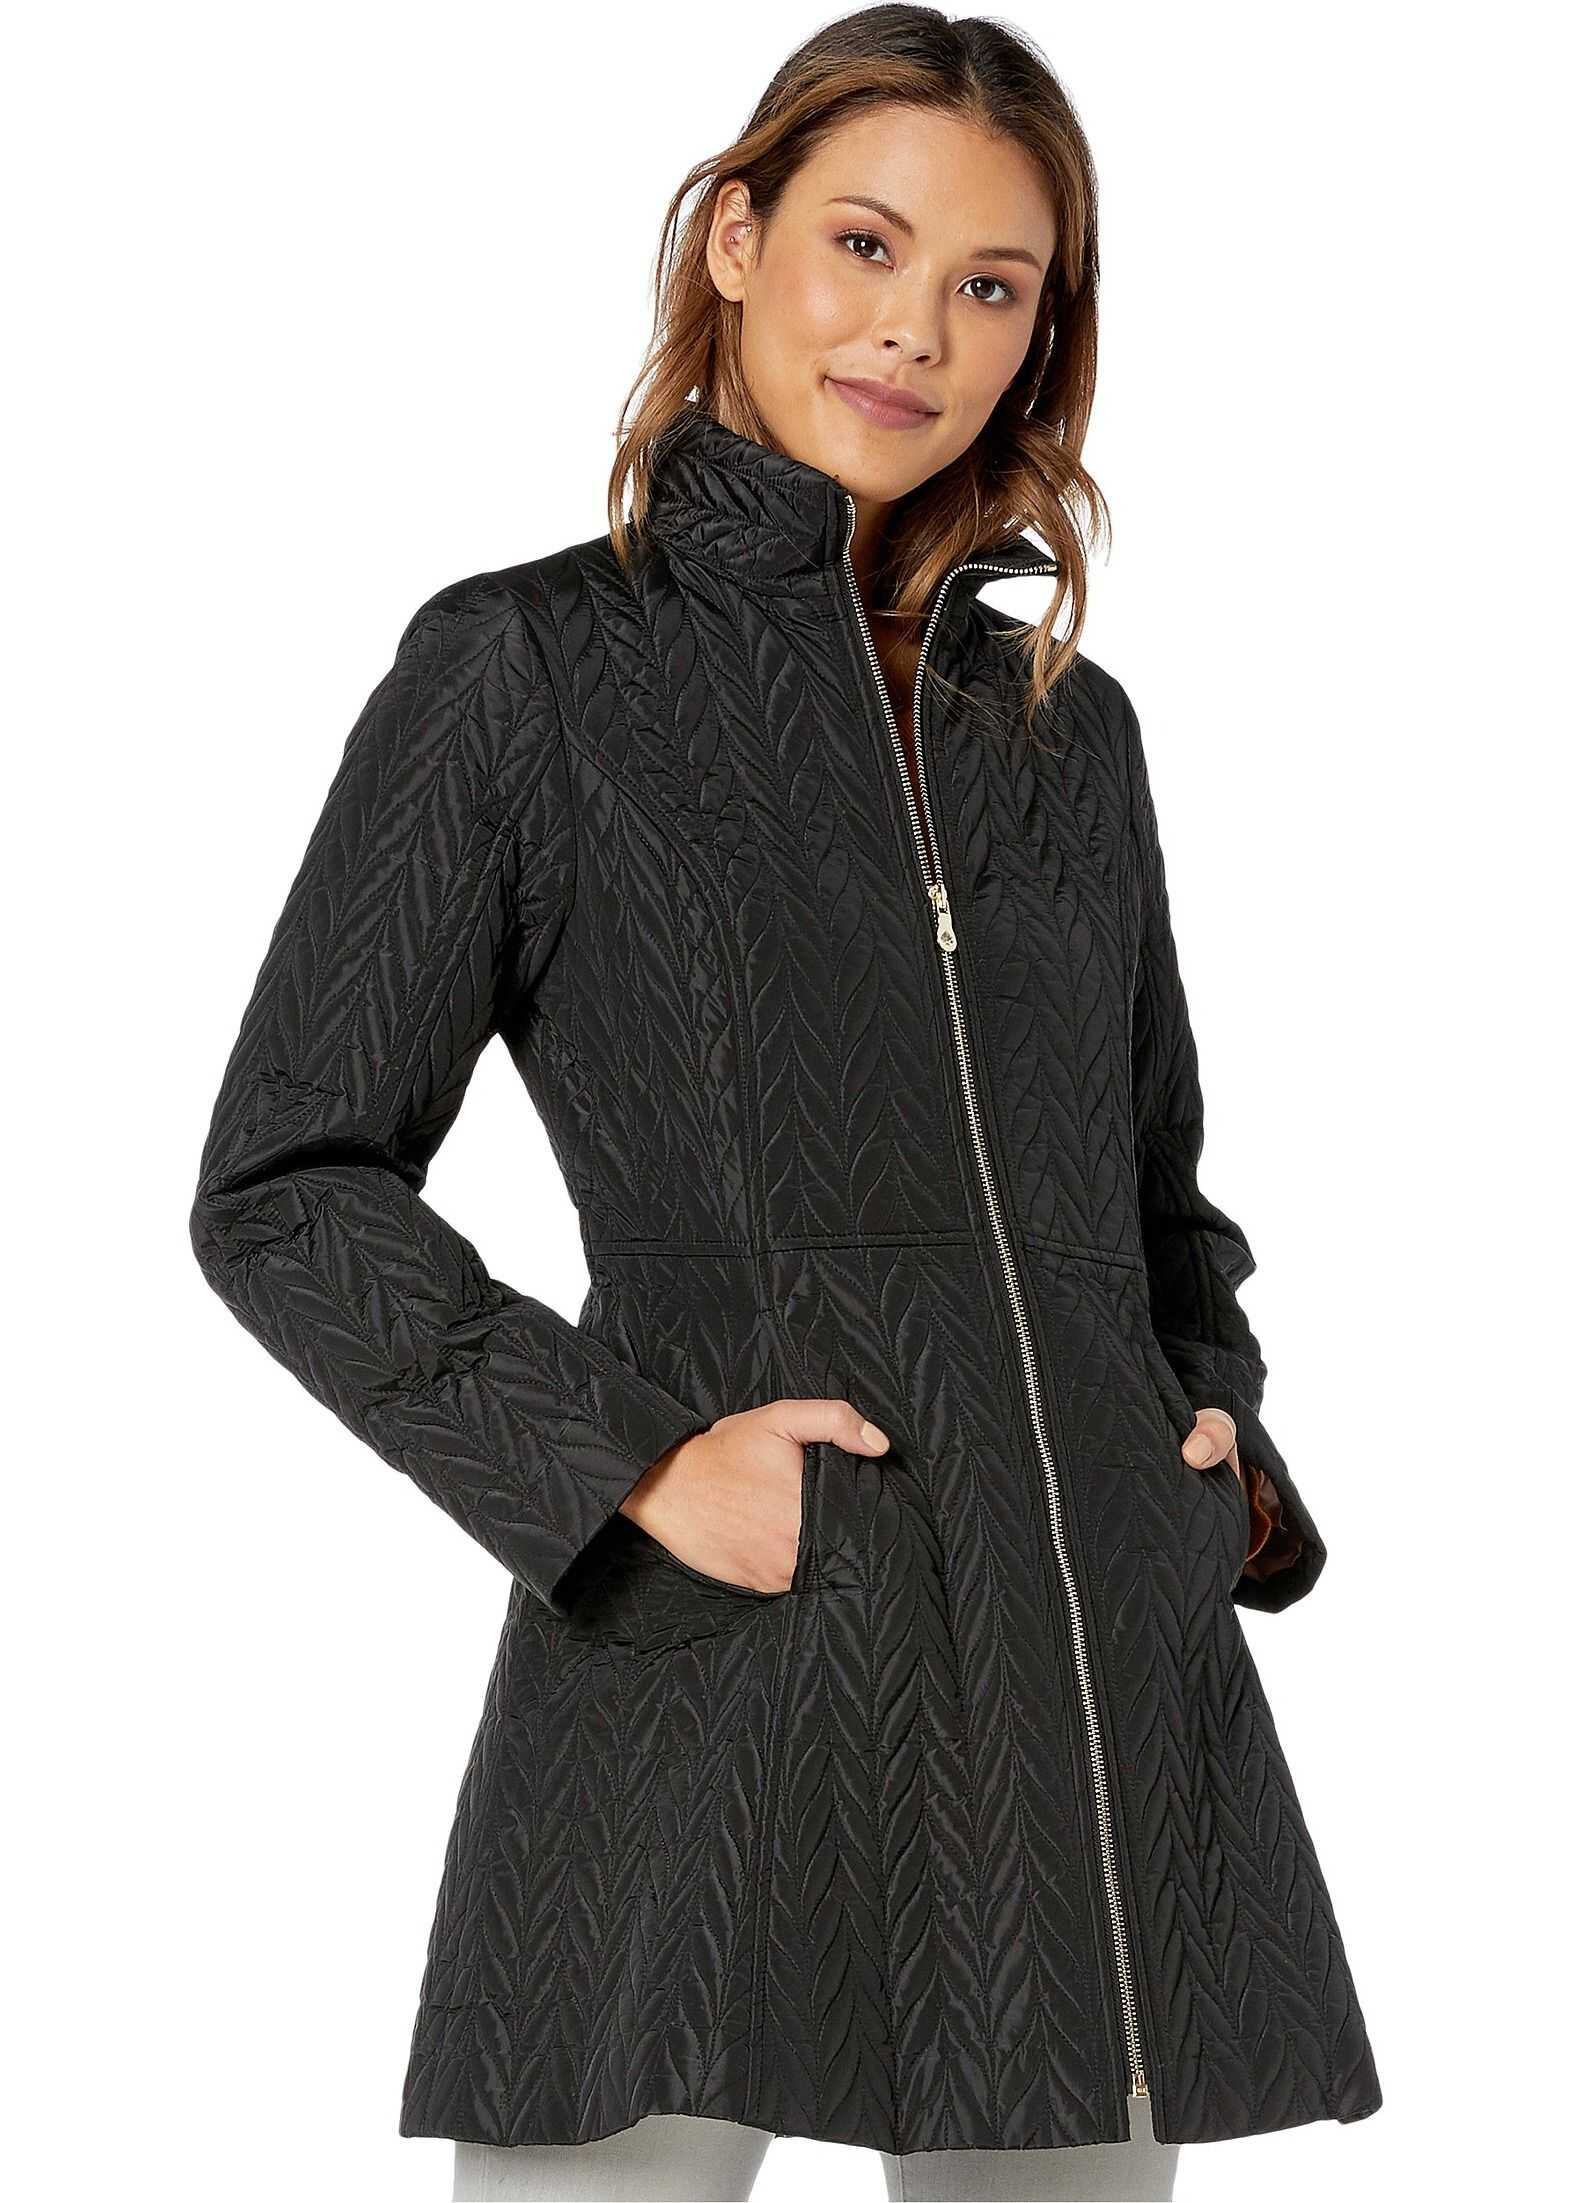 Kate Spade New York Quilted Long Jacket Black